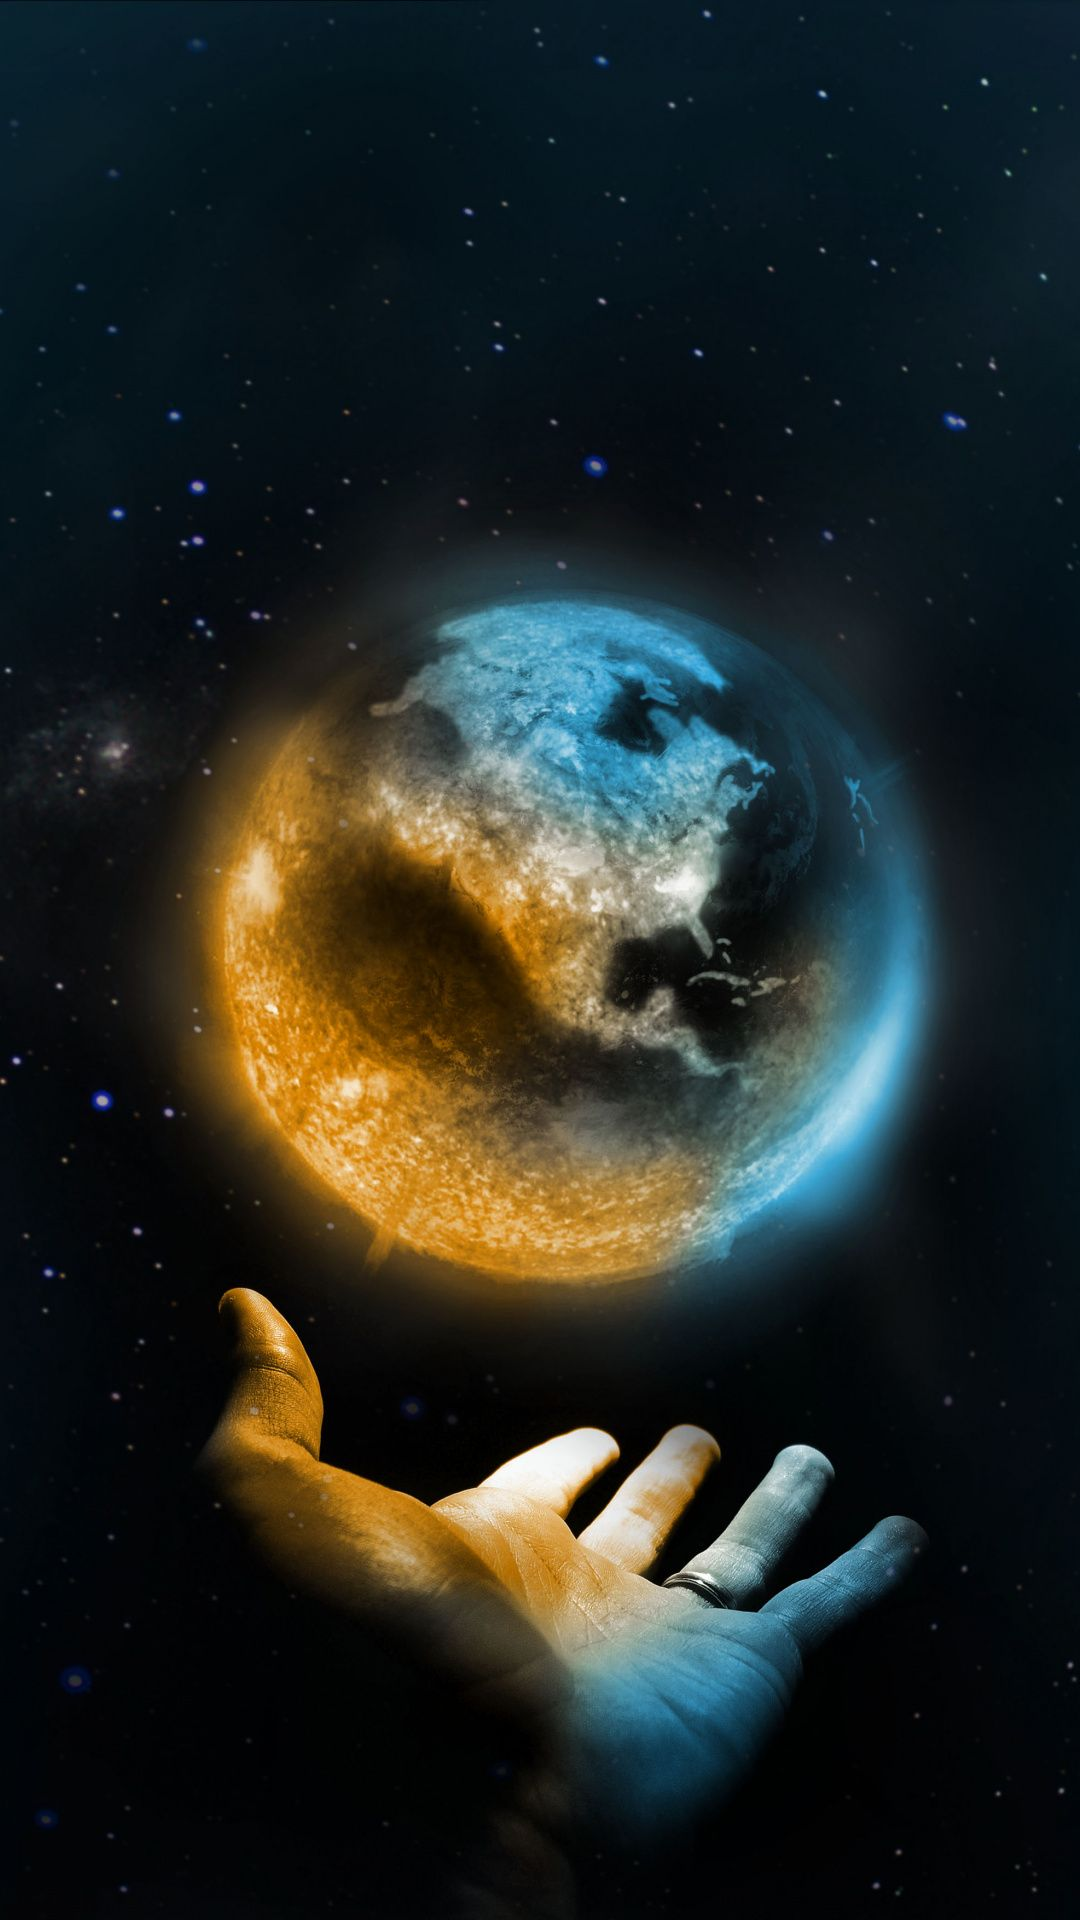 Hand and earth, Wallpaper wallpapers